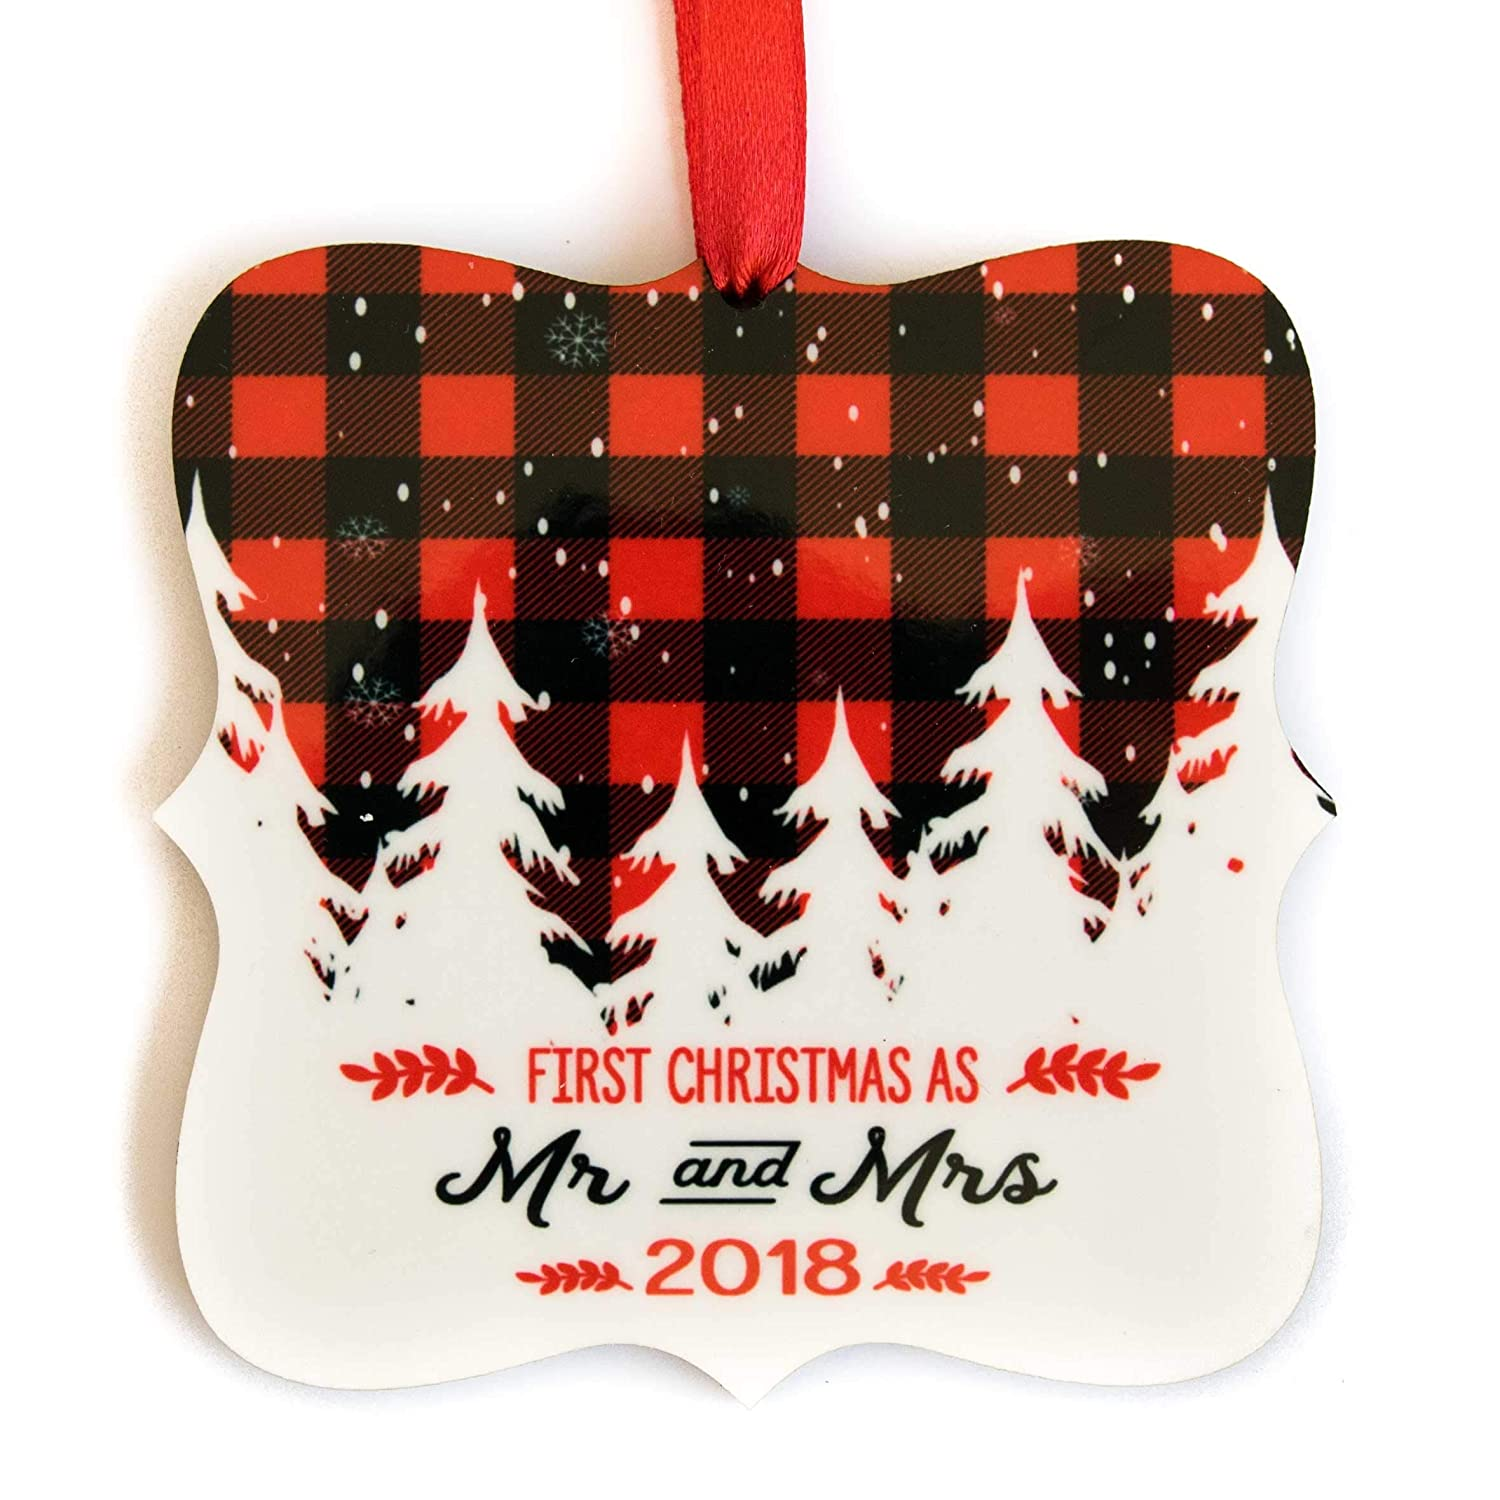 First Christmas as Mr and Mrs 2018 Ornament Gift for Newlyweds - FREE Gift Box